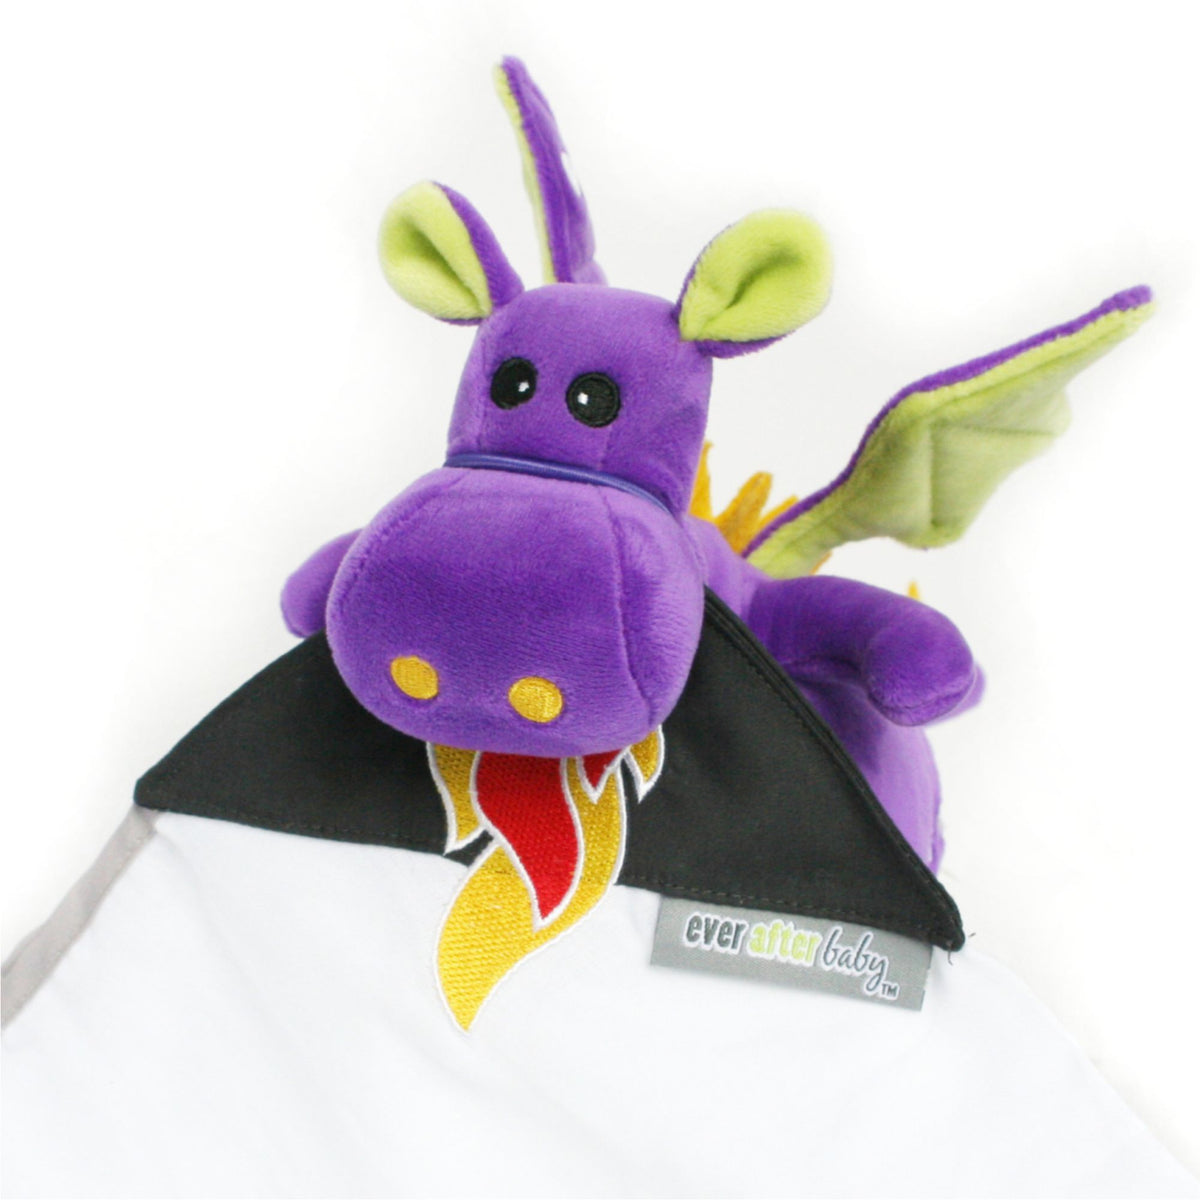 Dragon Squire Travel Toy - Bliss (3888423174178)